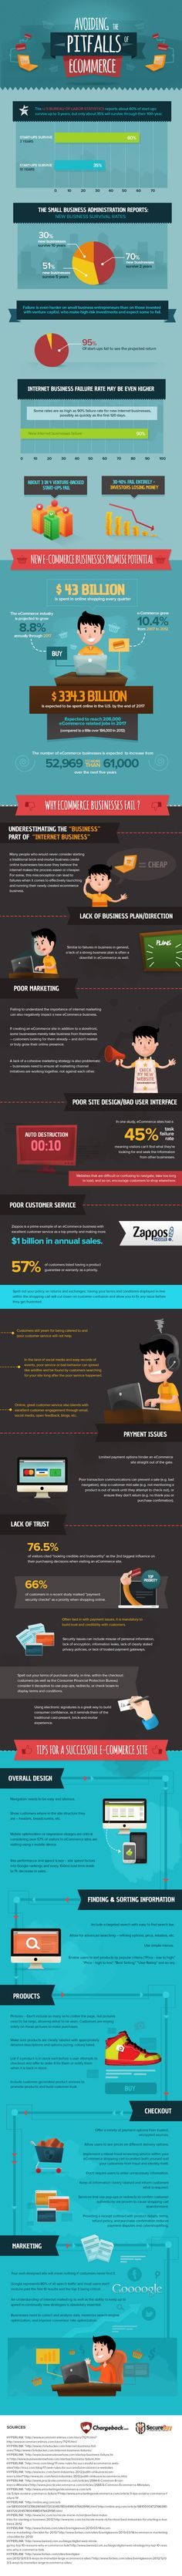 Avoiding the Pitfalls of Ecommerce | Chargeback & SecureBuy [Infographic]